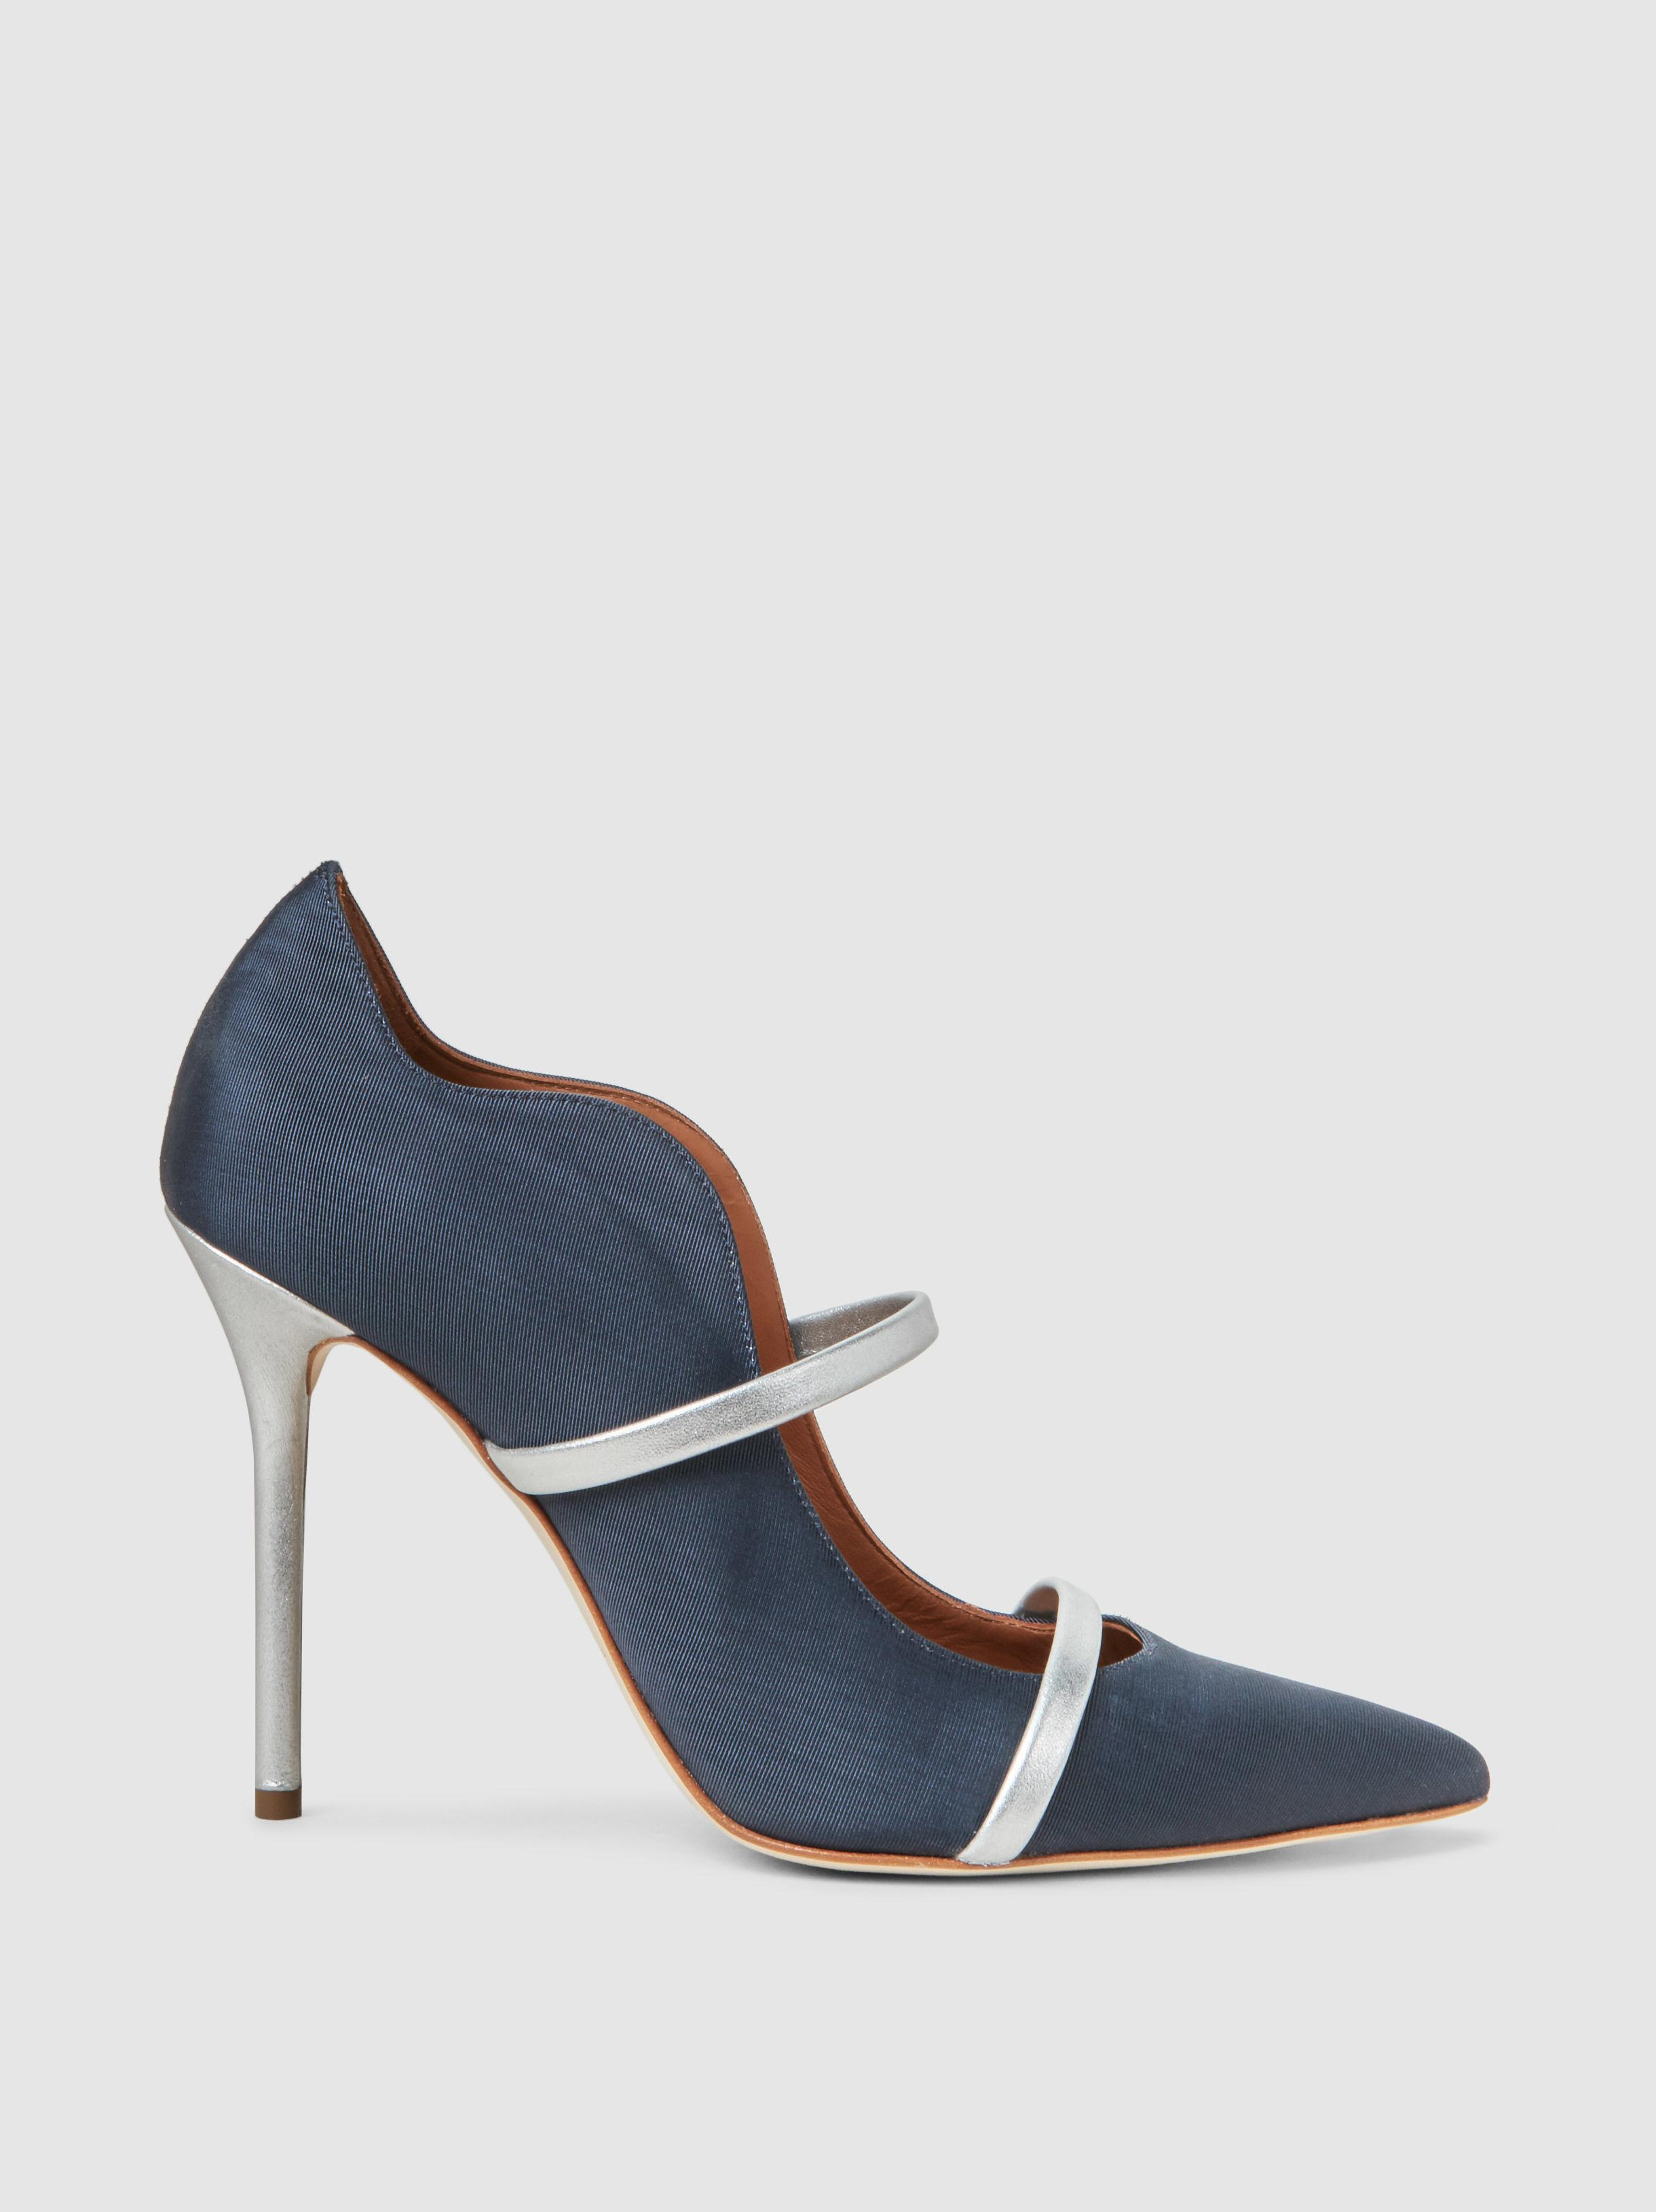 Malone Souliers Woman Leather And Suede Platform Sandals Blue Size 40 Malone Souliers Clearance Cost Clearance Low Shipping Fee Really Cheap Shoes Online Cheap For Sale SKjQ8